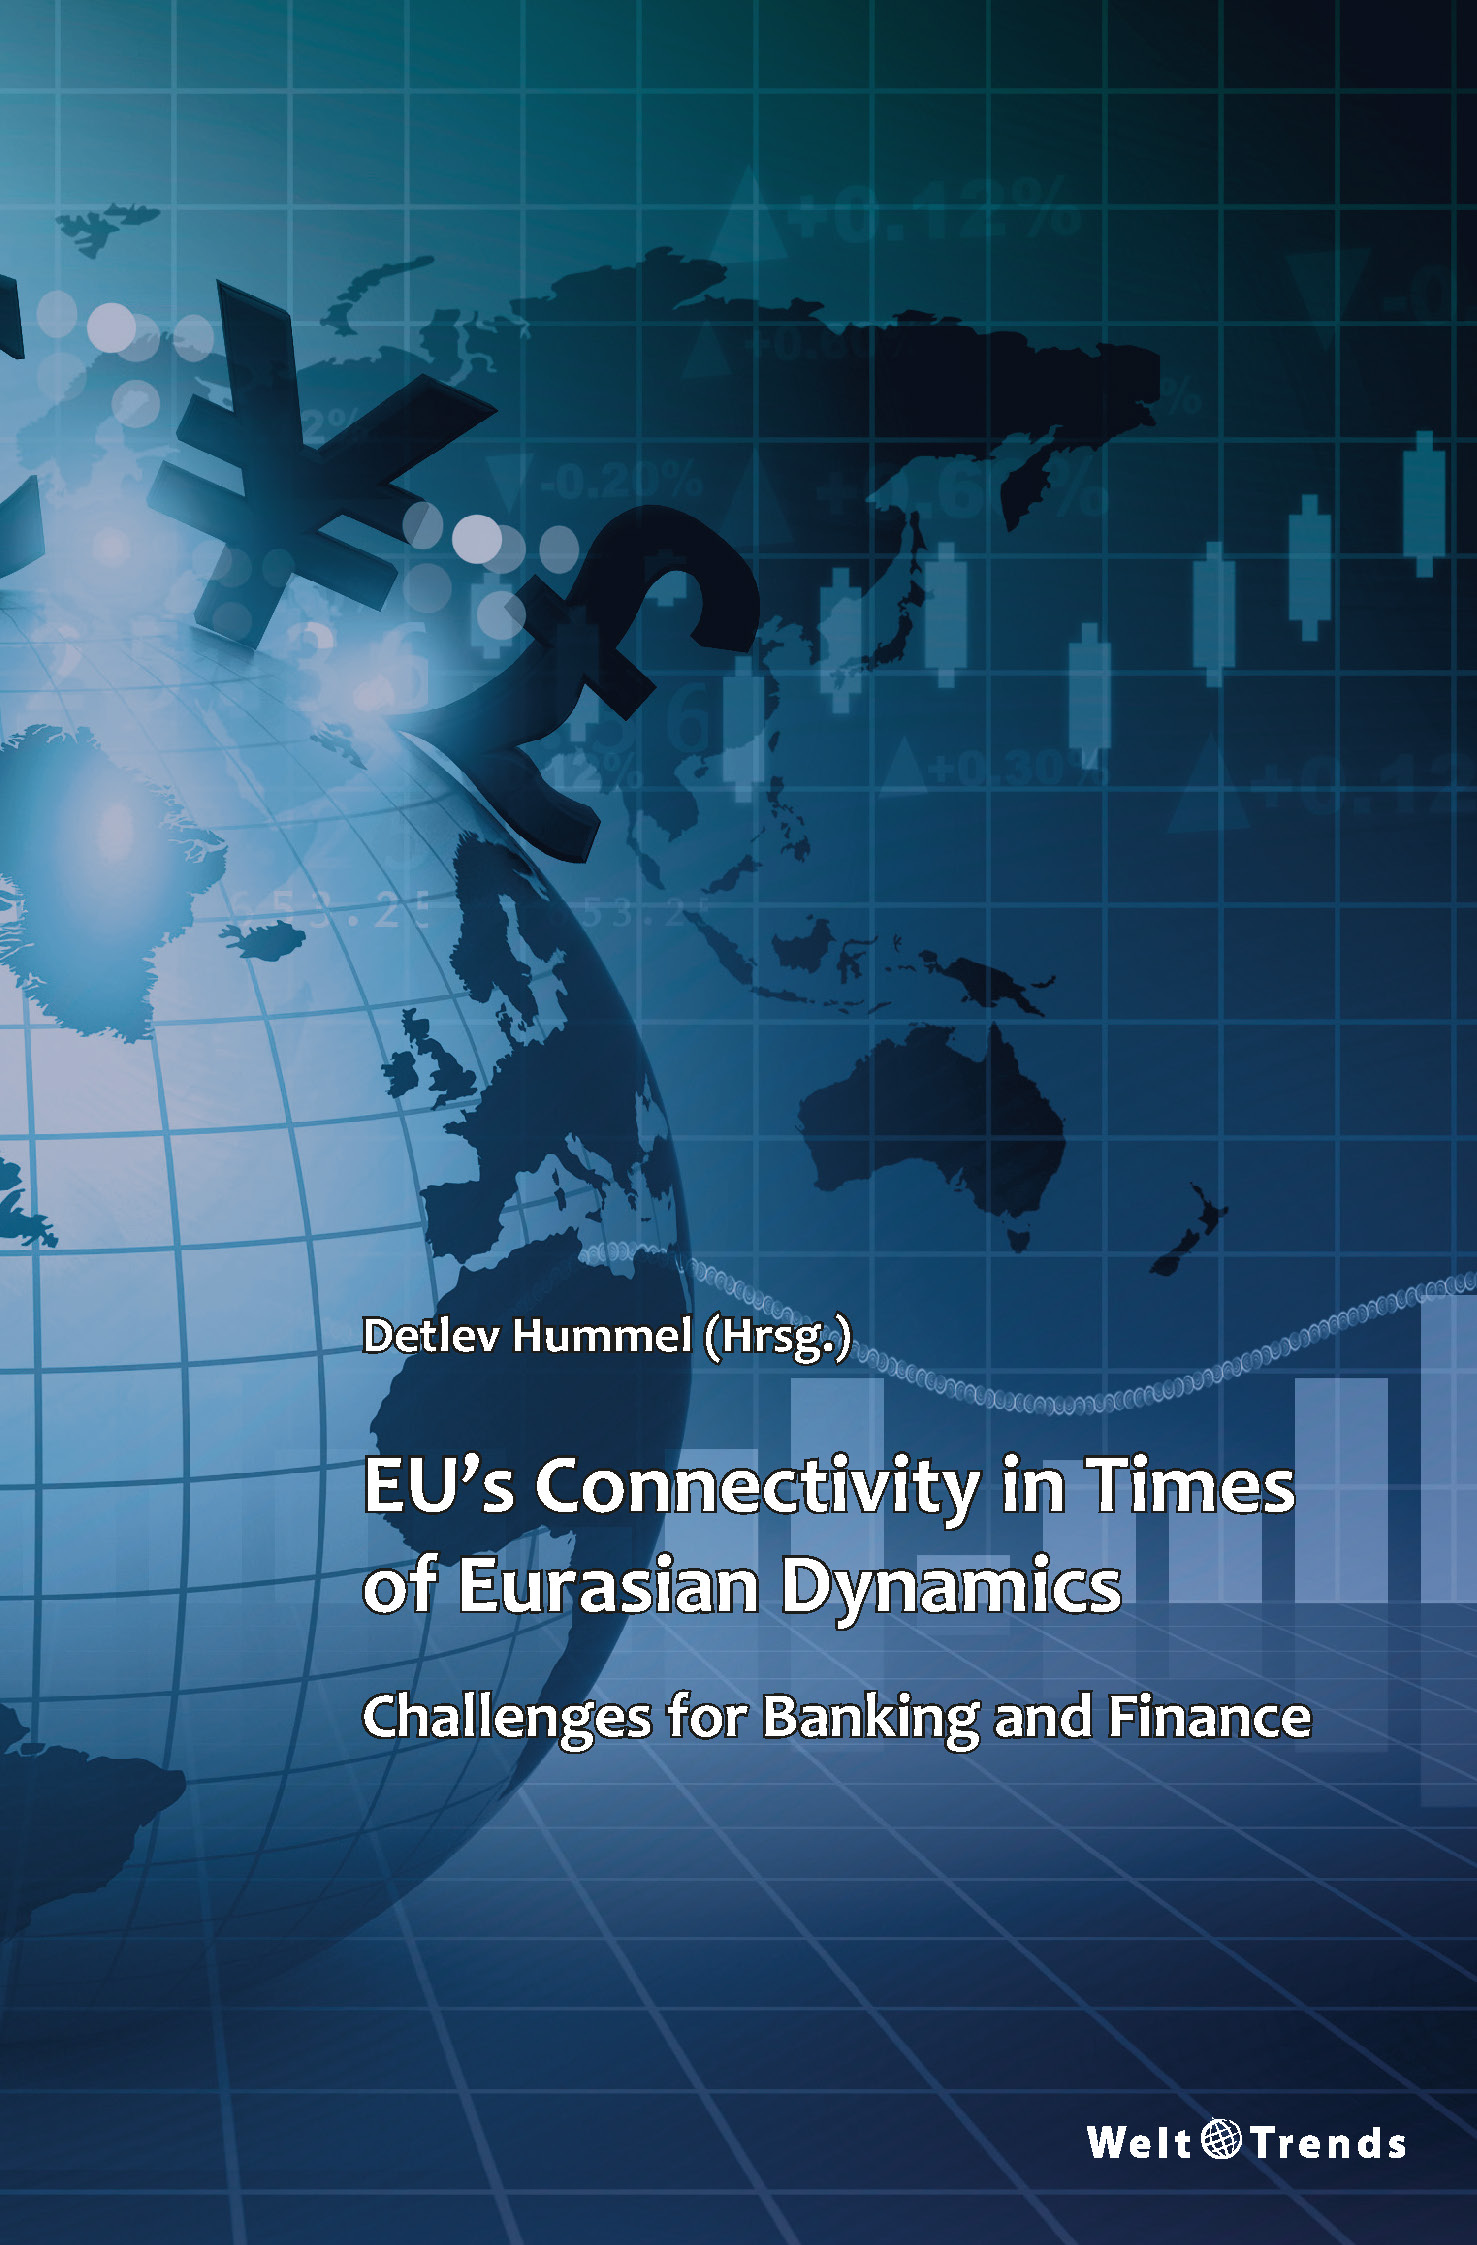 EU's Connectivity in Times of Eurasian Dynamics